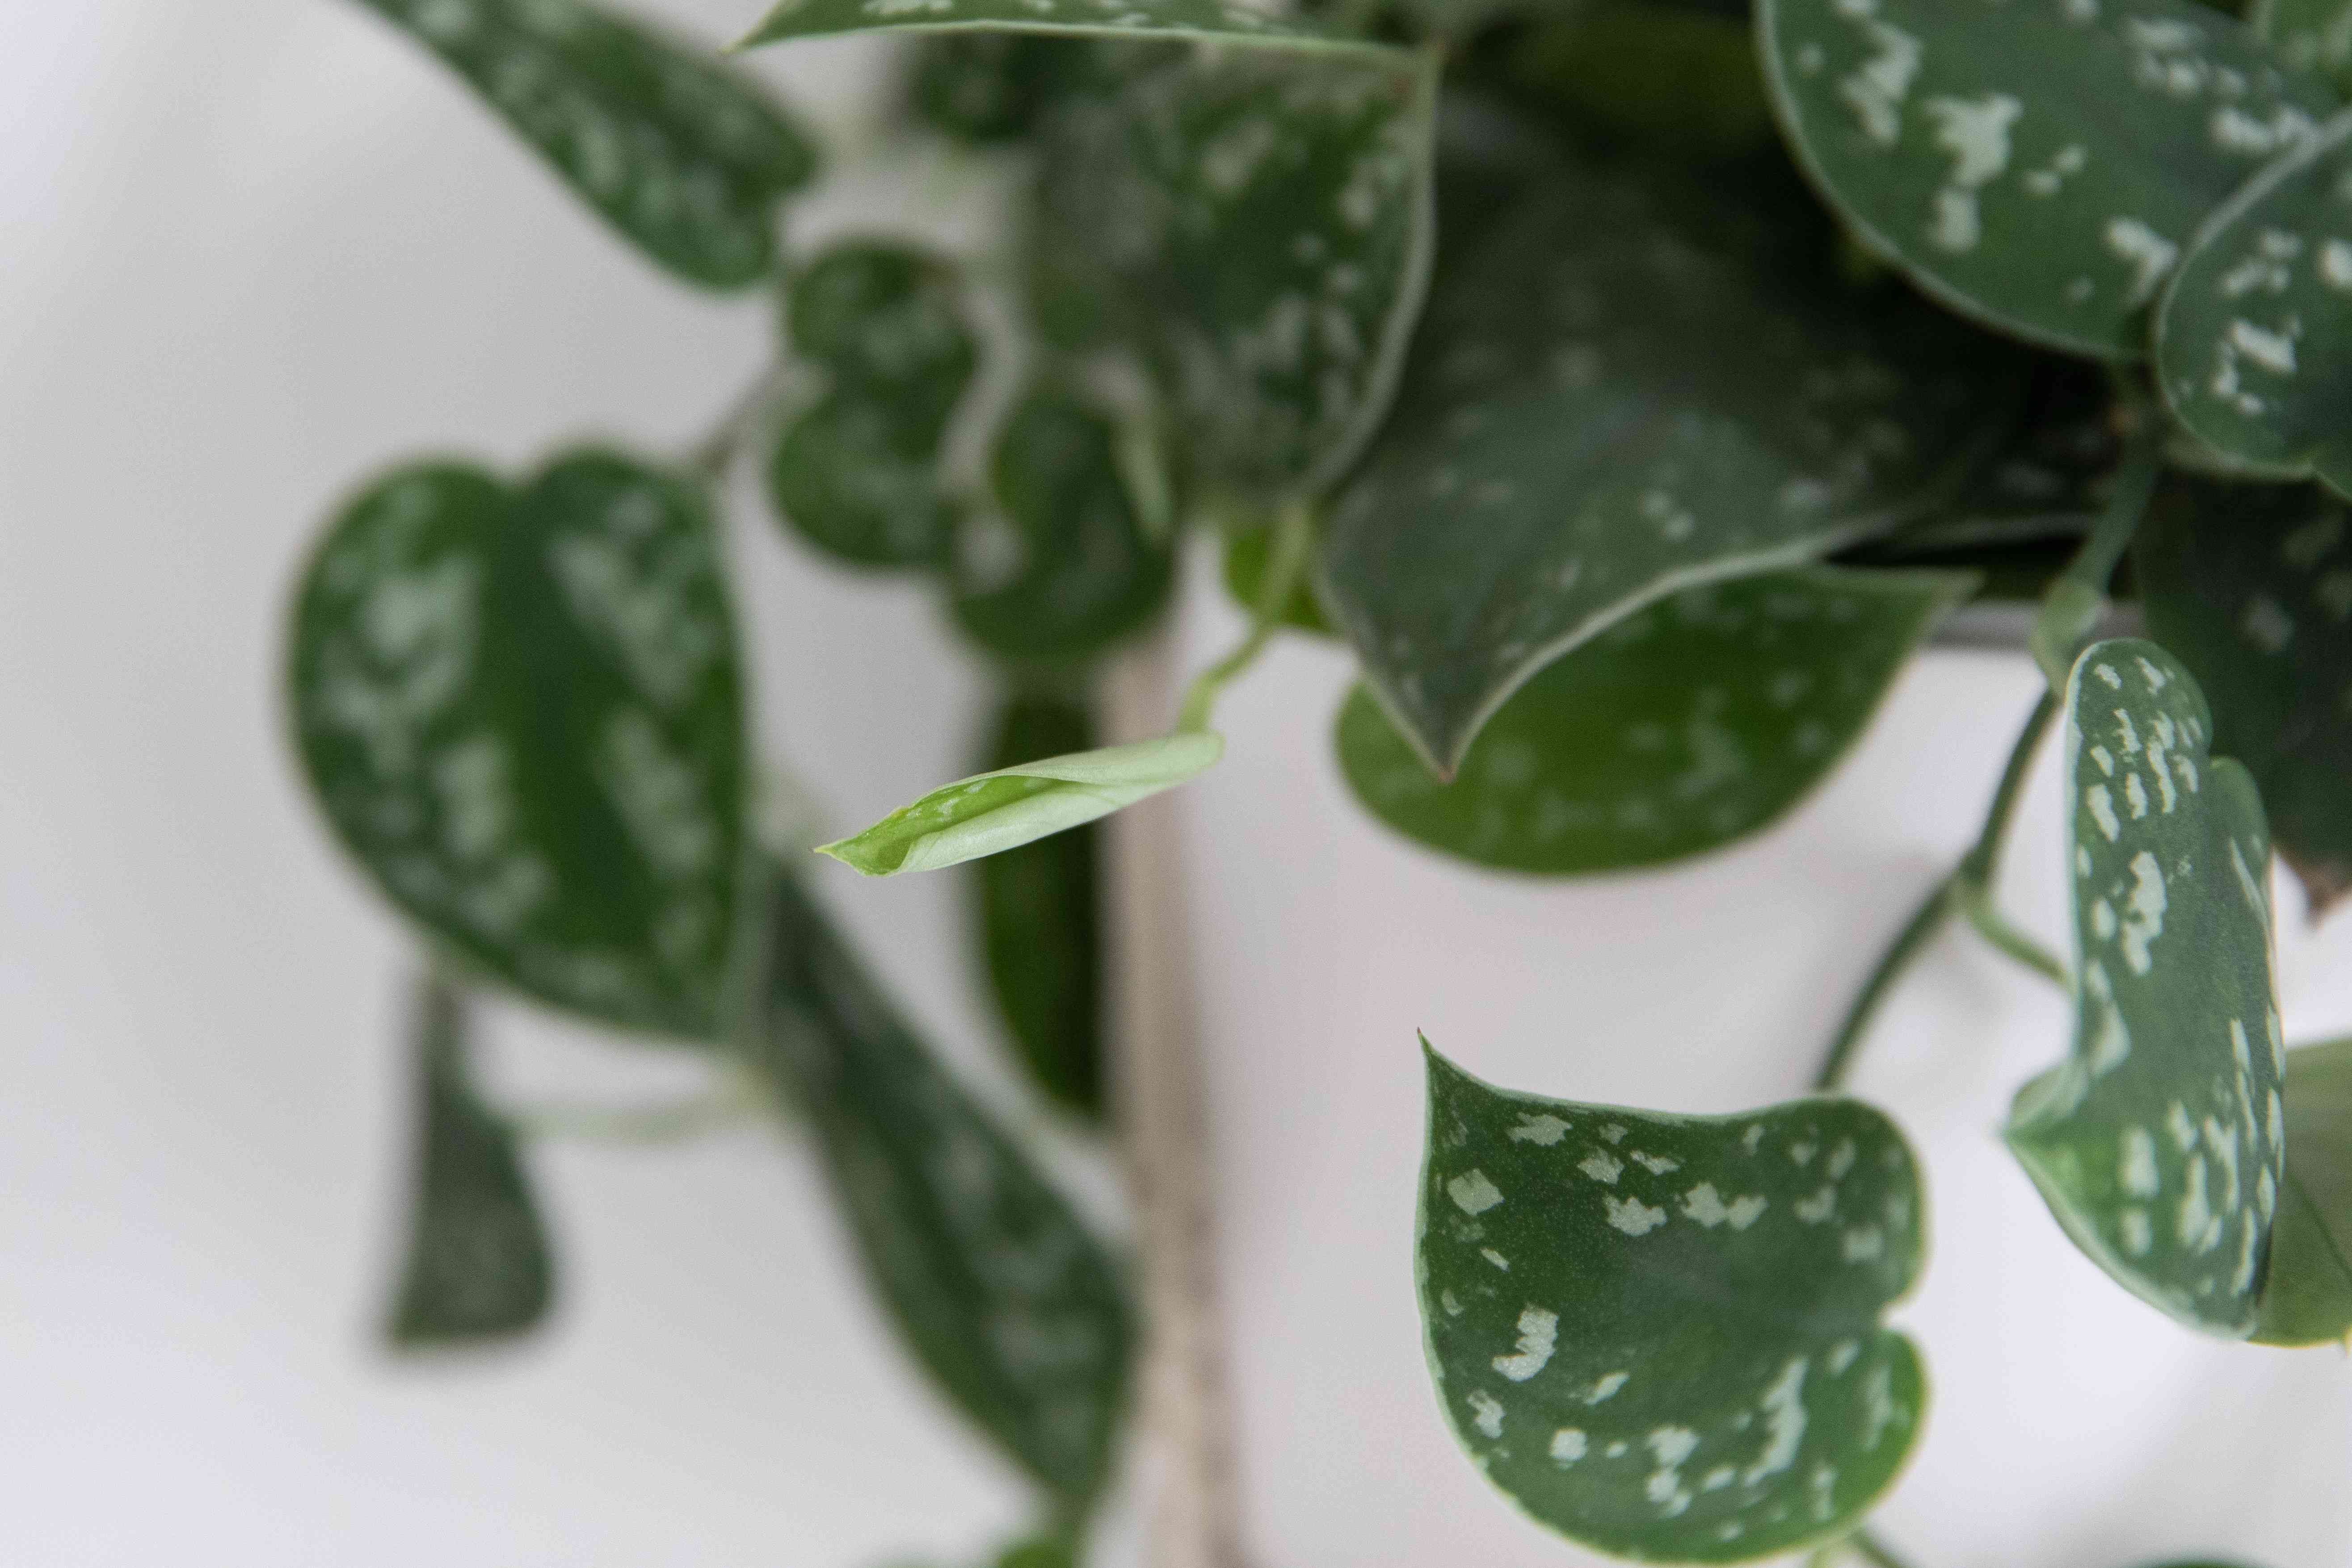 Satin pothos with spotted leaves and unfurling bud closeup